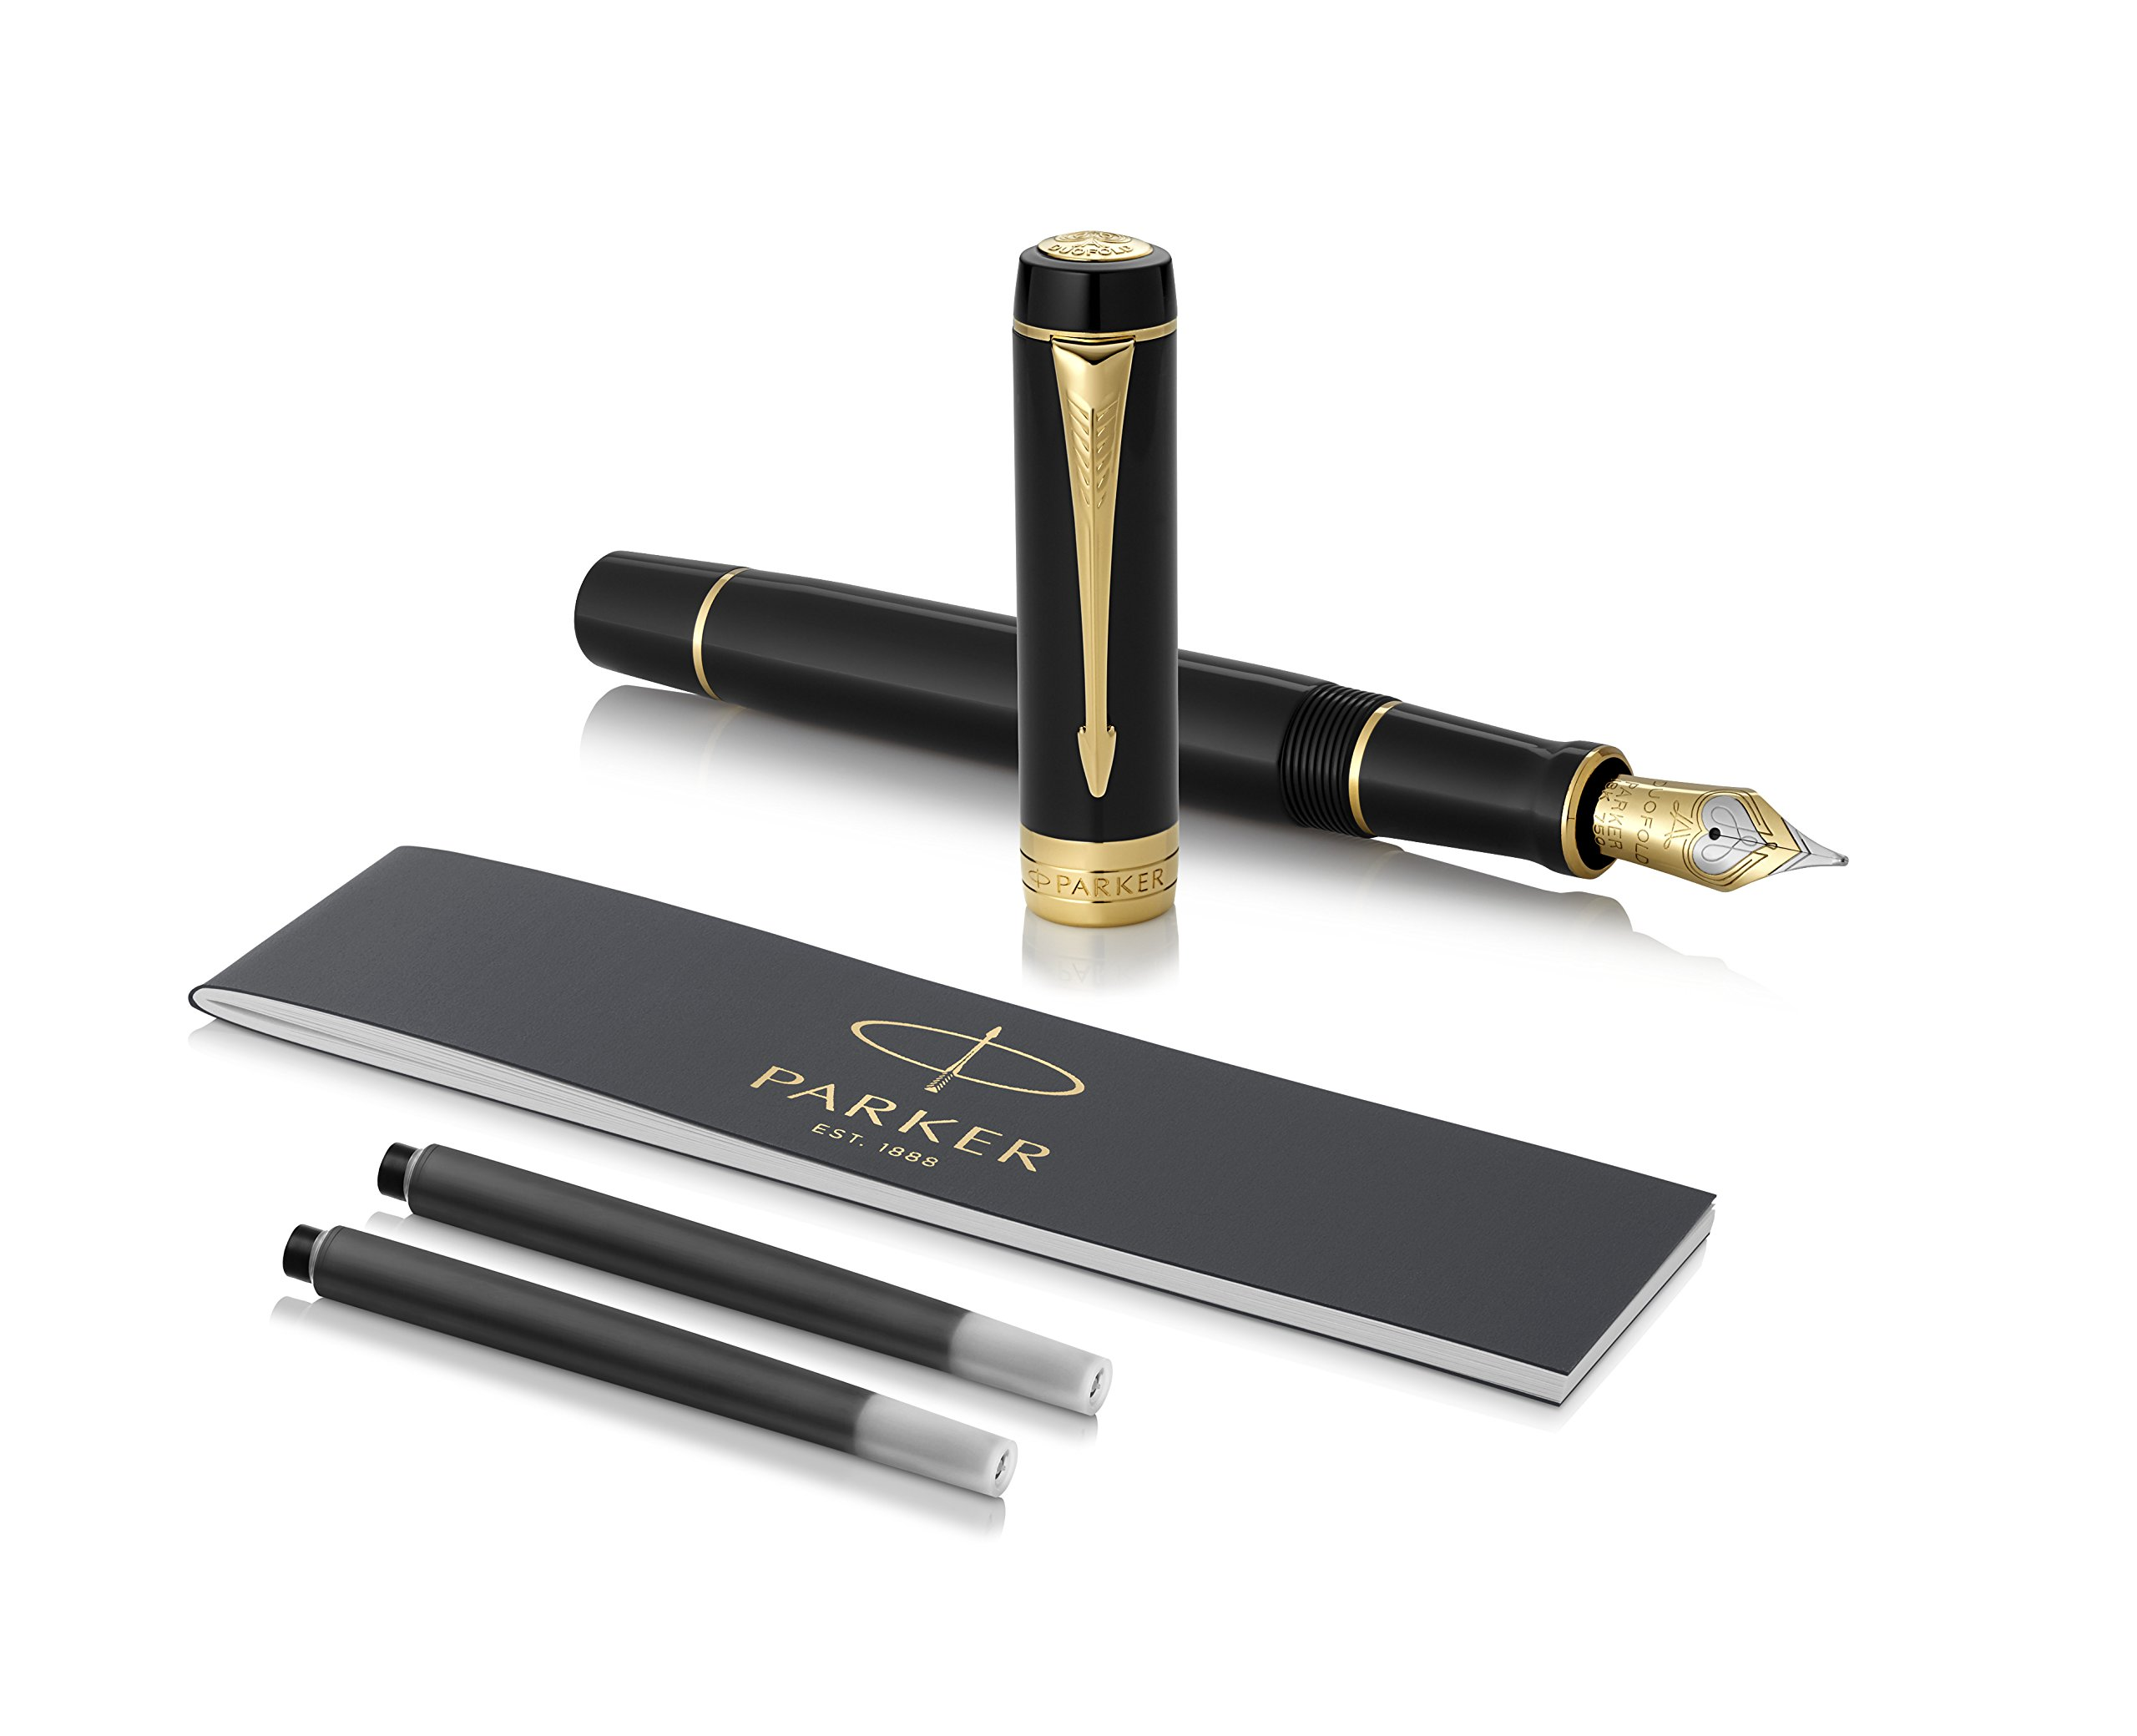 PARKER Duofold Centennial Fountain Pen, Classic Black with Gold Trim, Fine Solid Gold Nib, Black Ink and Convertor (1931381)